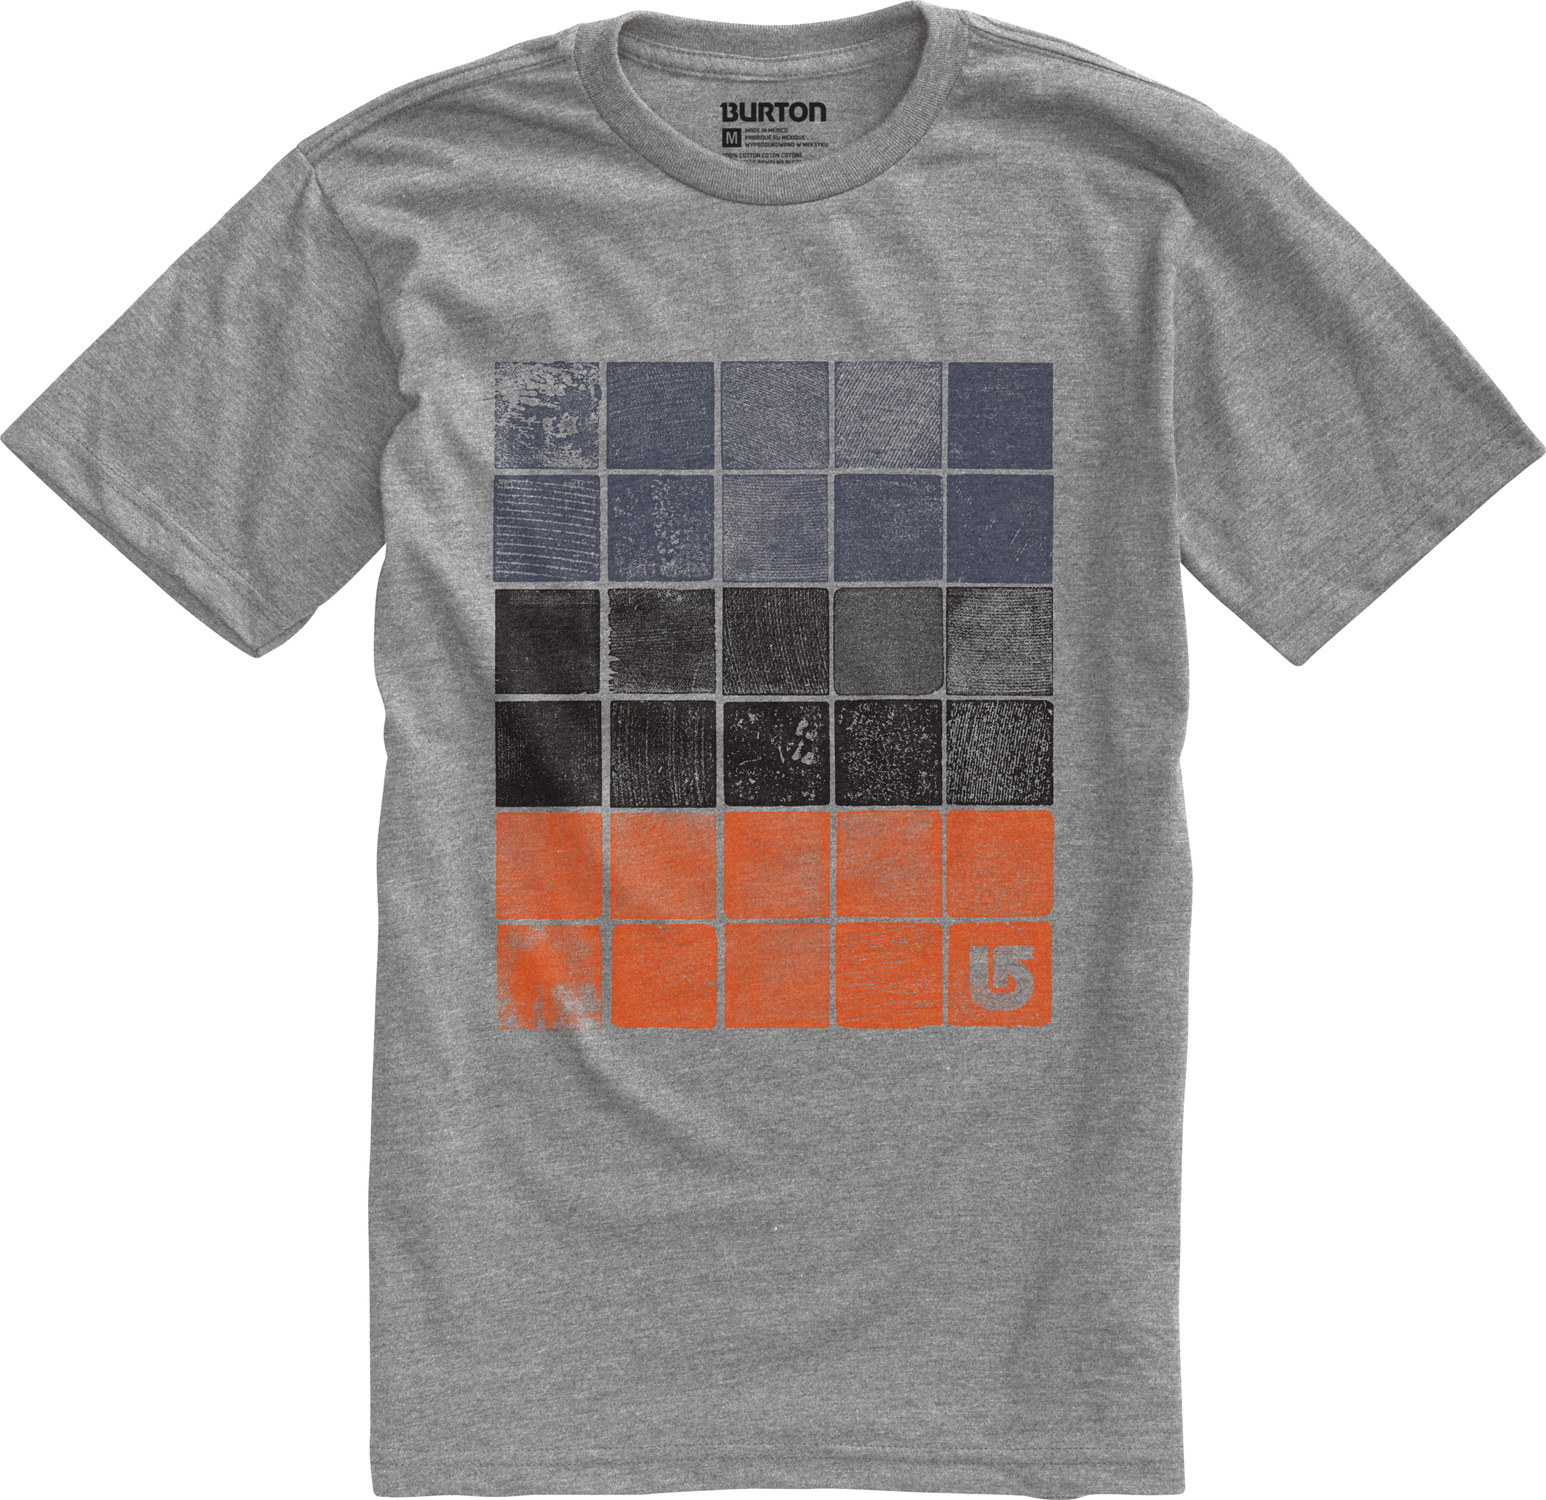 Snowboard Key Features of the Burton Woodblocks T-Shirt: 90% Cotton, 10% Polyester [Heather Gray] 100% Cotton [All Other Colorways] Screen Print on Front and Back Regular Fit - $12.95